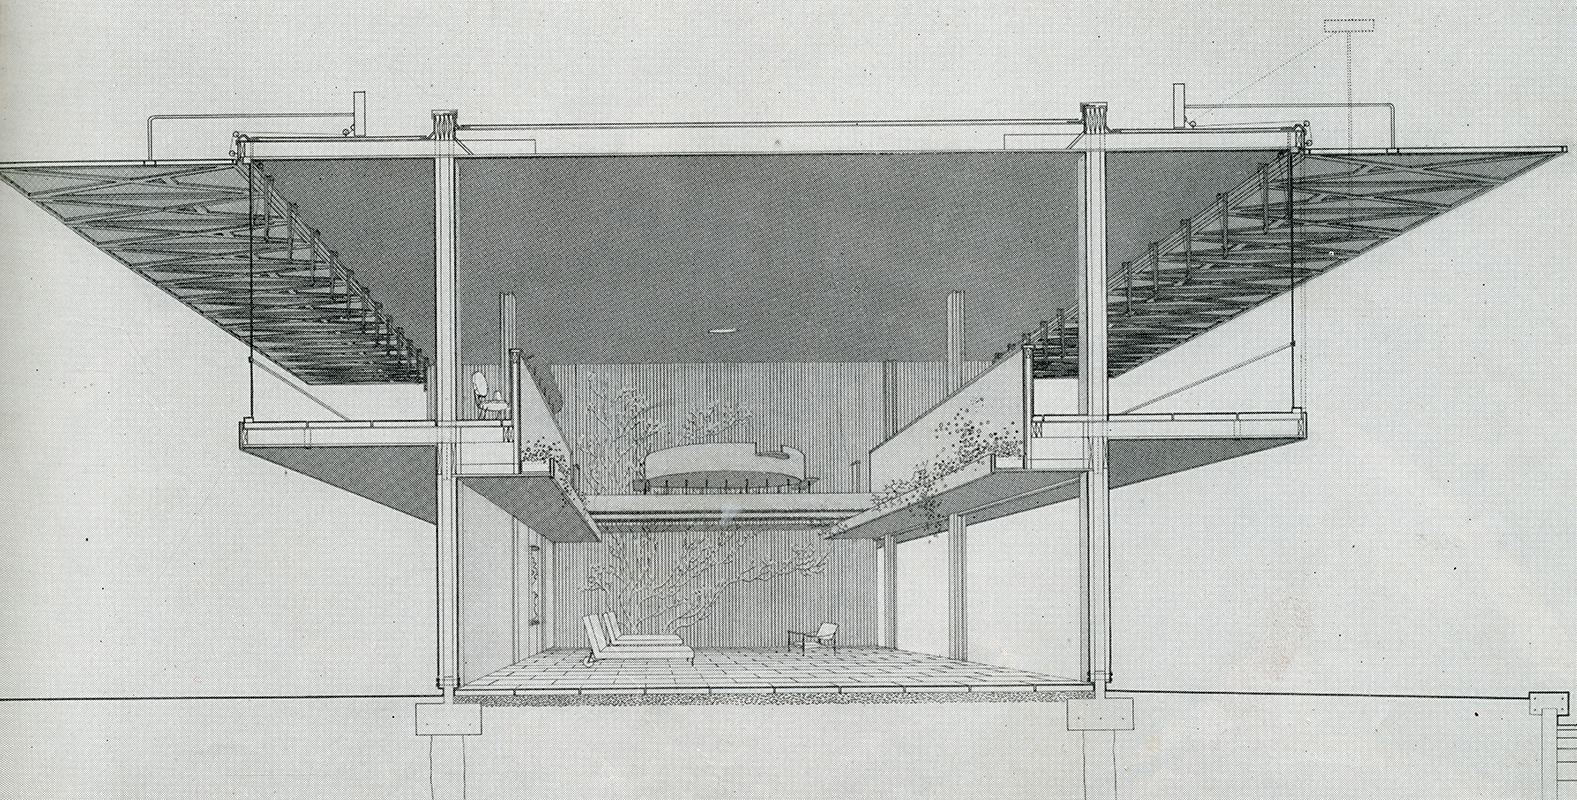 Paul Rudolph. Arts and Architecture. Sep 1954, 15